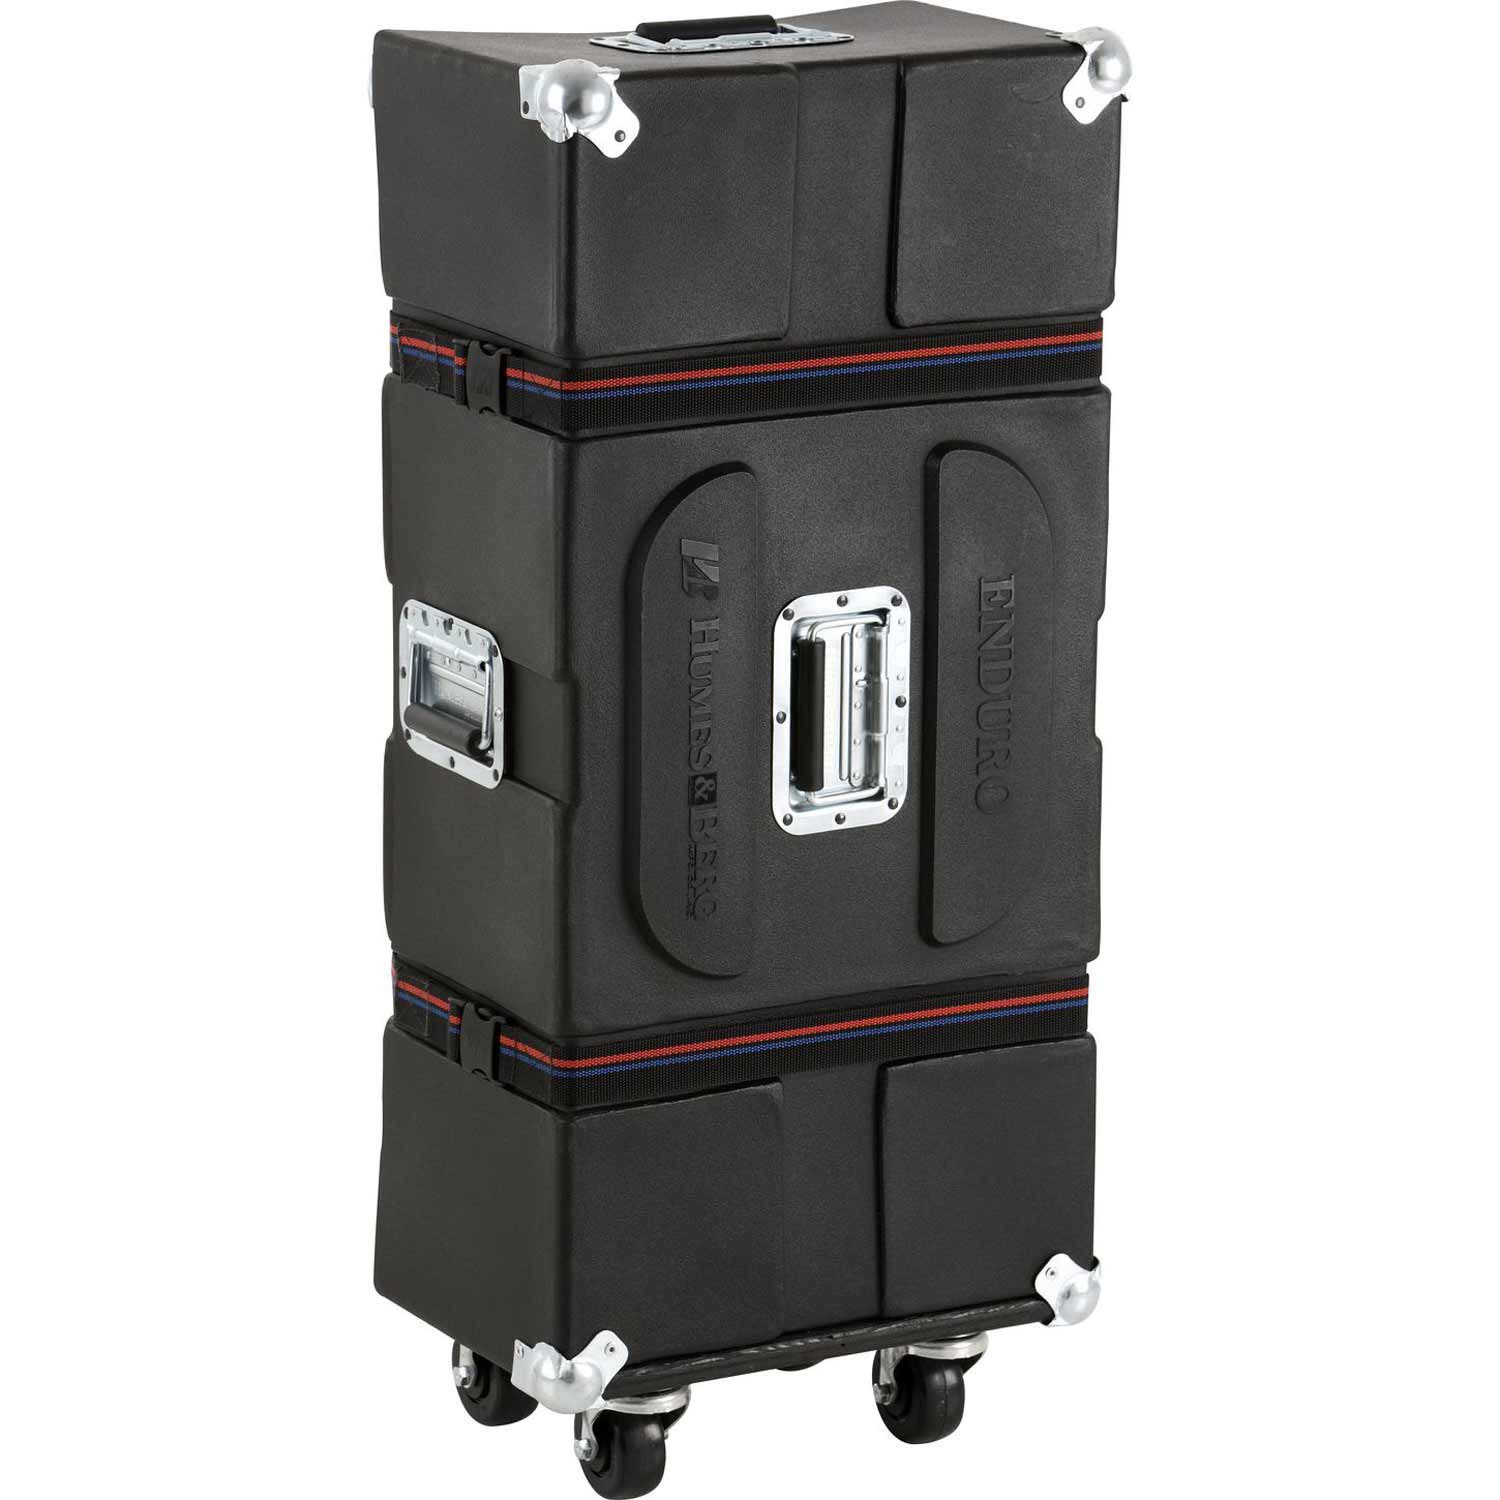 "Humes & Berg 30.5"" x 14.5"" x 9"" Enduro Companion Case with Wheels"